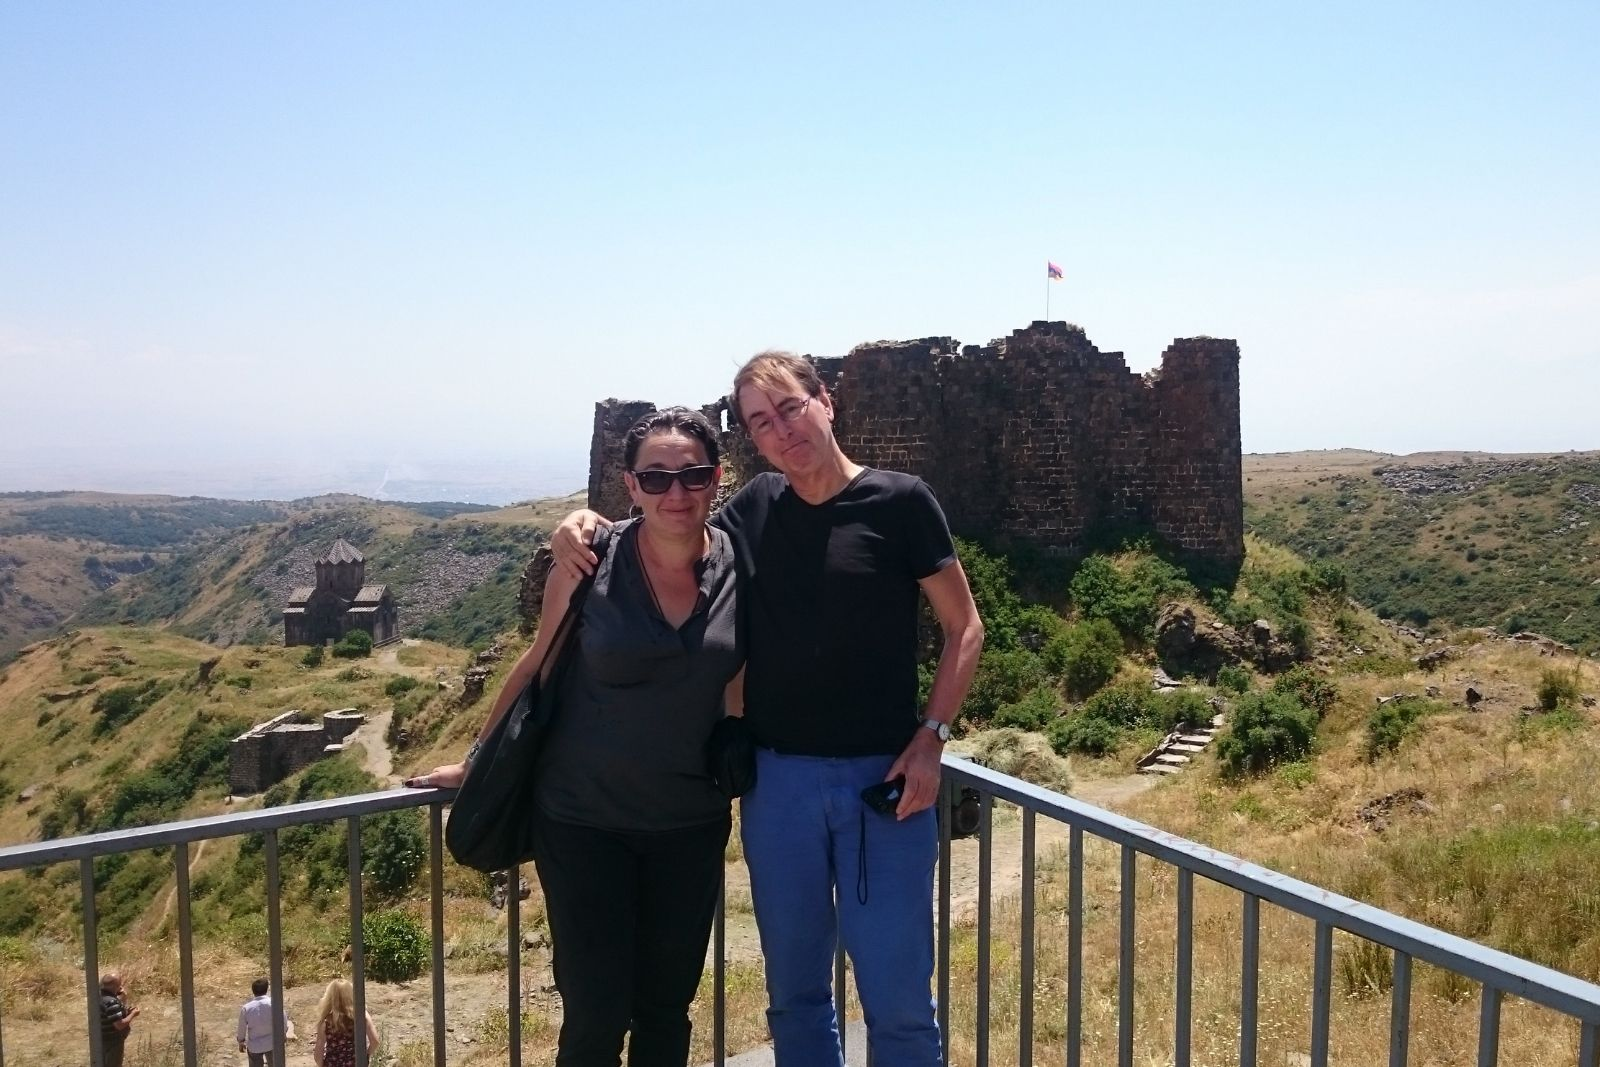 Armenian Studies summer school 2015 participants Yana Tchekhanovets and Rene Bekius at medieval fortress Amberd